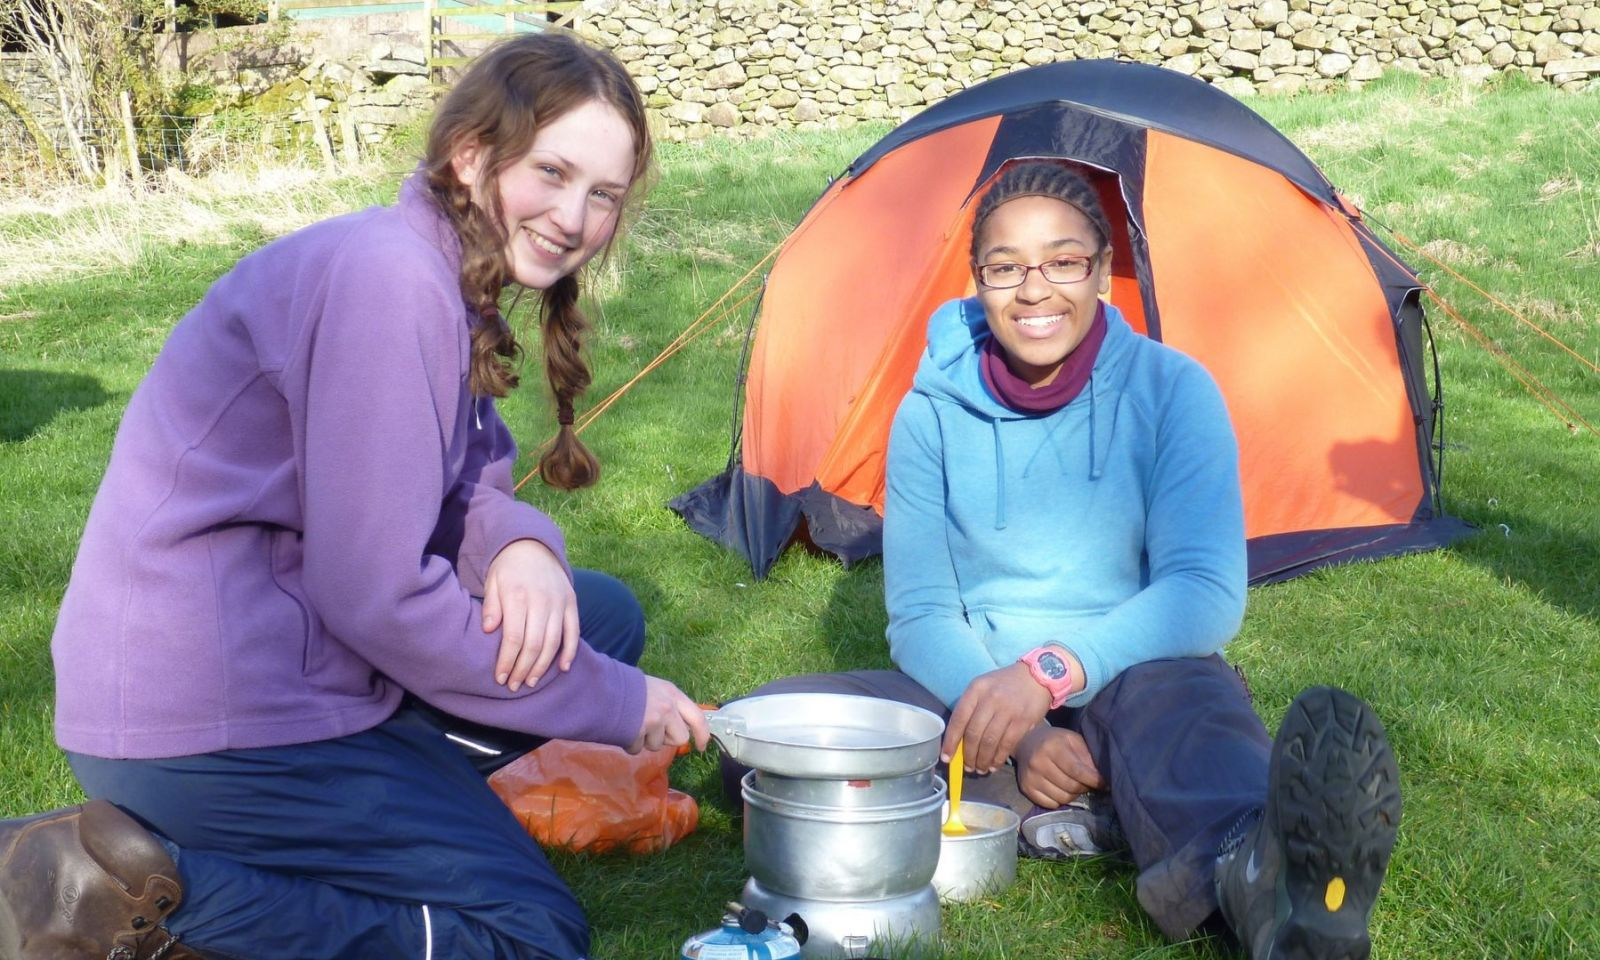 2 girls smiling and enjoying cooking on their stove during a DofE expedition.